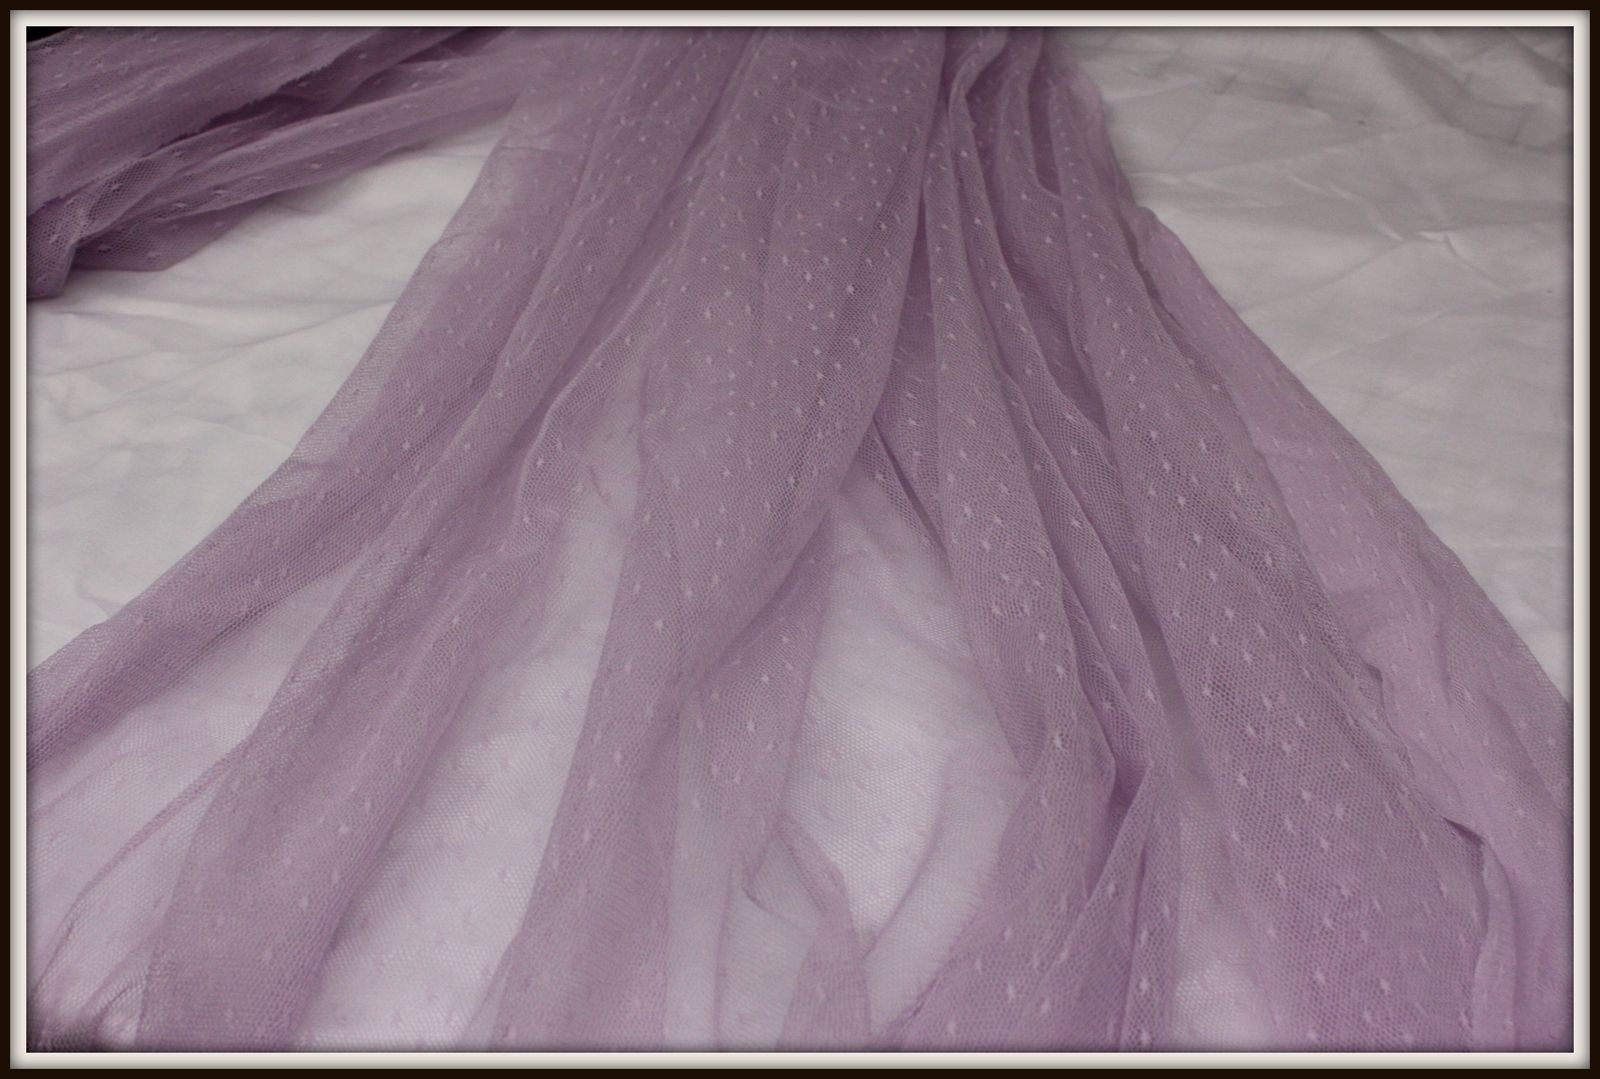 VICTORIAN LAVENDER DE LIS FINE NET LACE FABRIC,IMPORTED FROM FRANCE